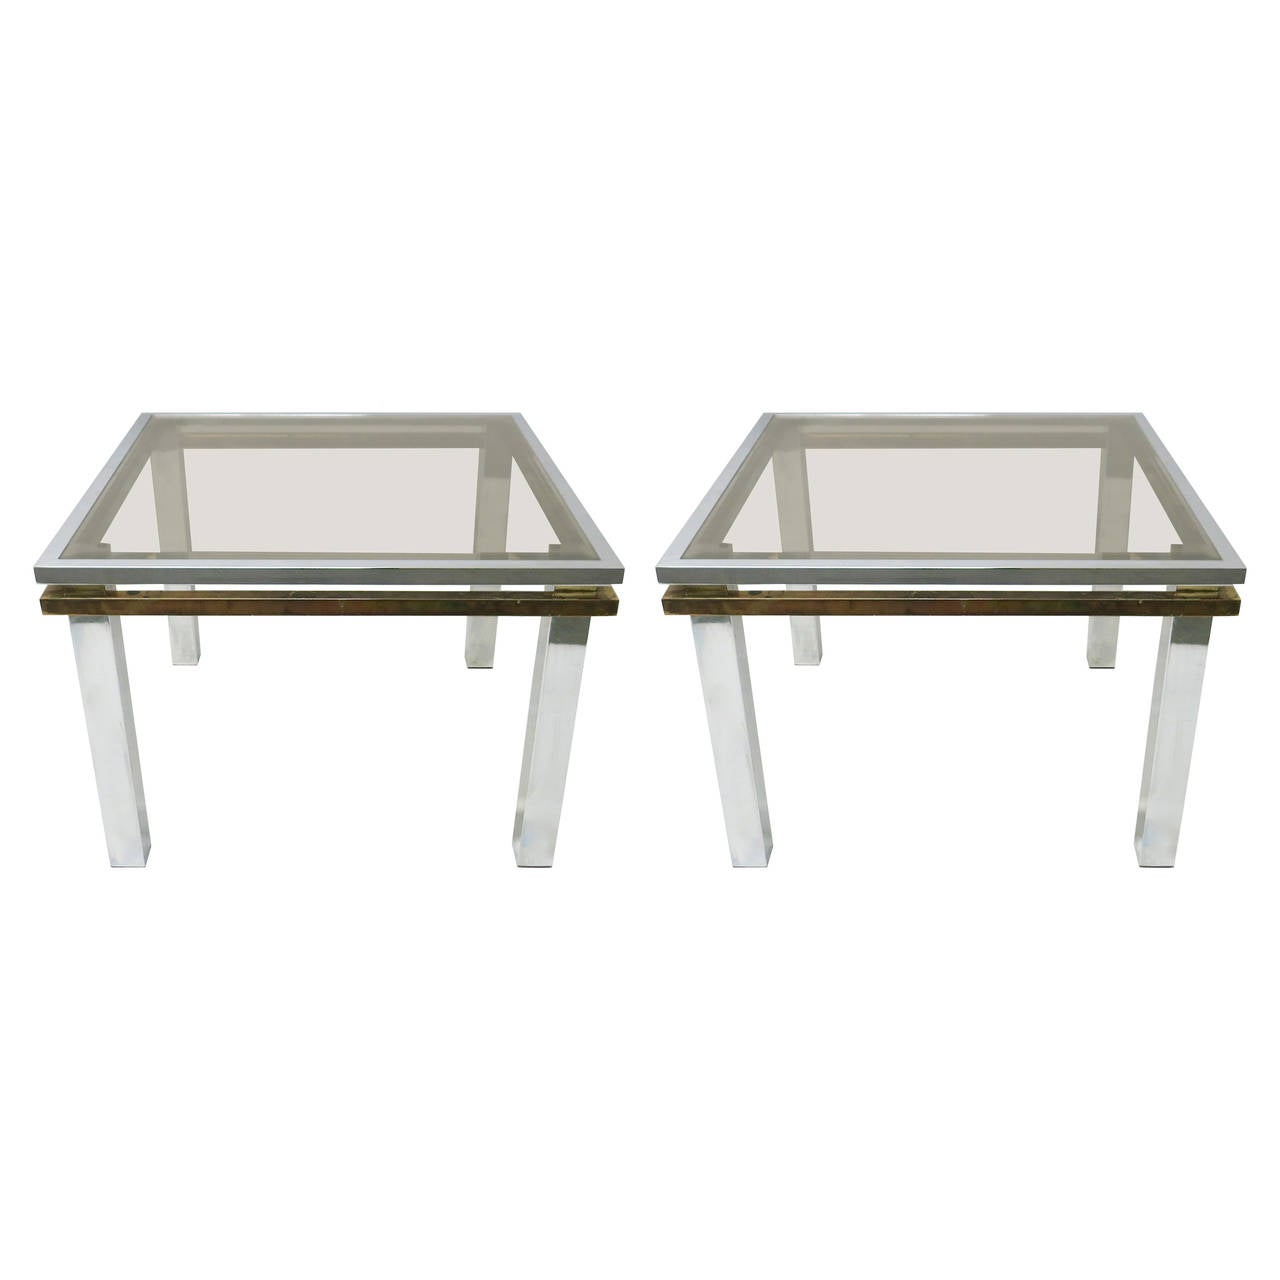 Pair of Square Side Tables in Chrome and Brass, USA C. 1970